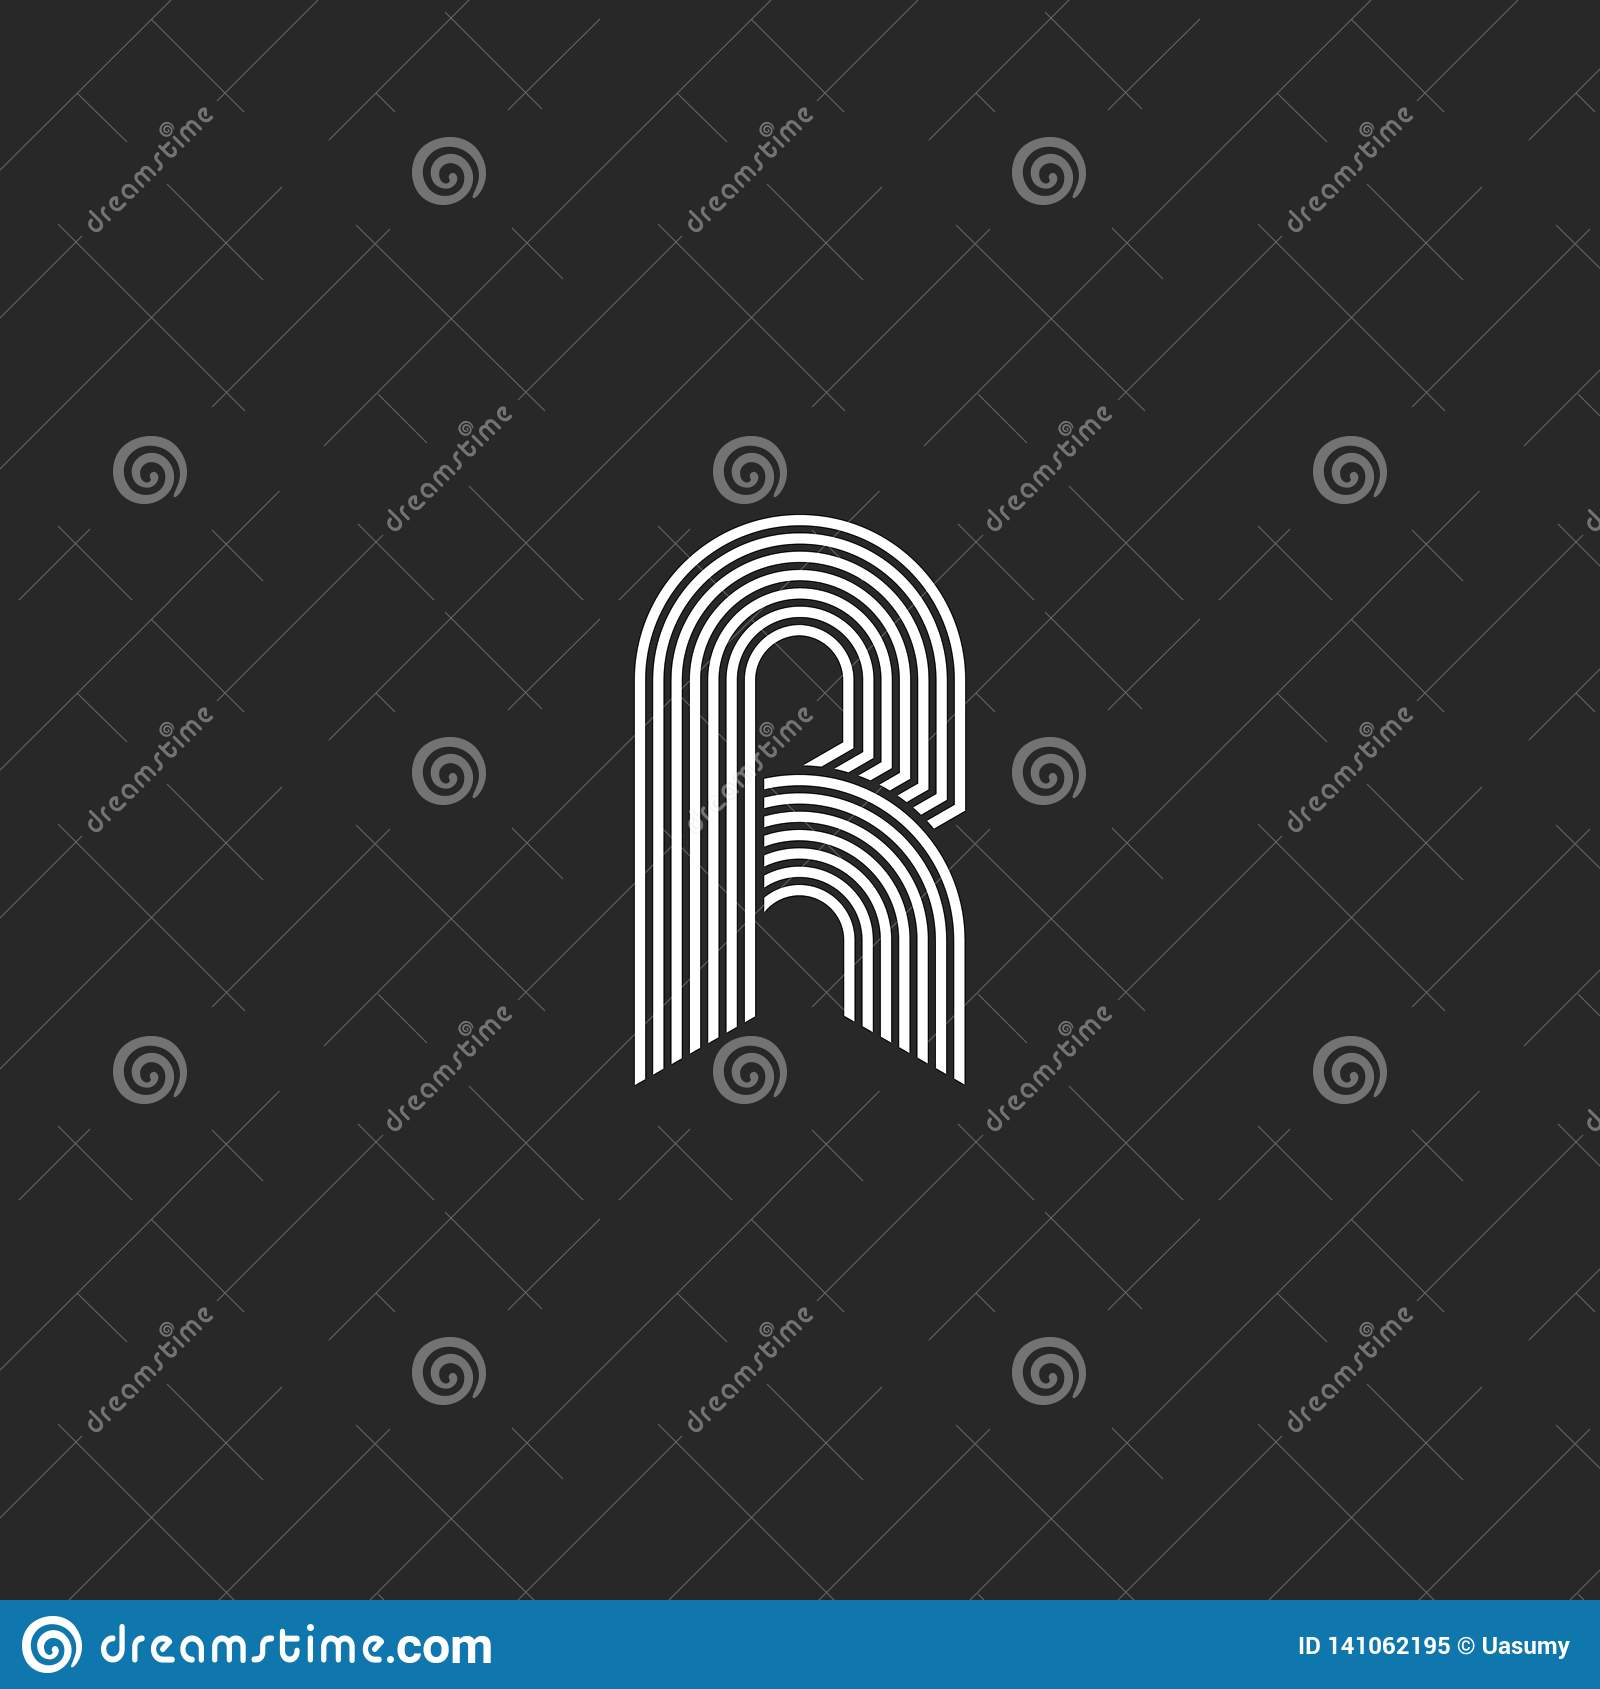 Hipster white letter r monogram linear or icon on black background. Linear vector initial symbol logo. Elegant line curve logotype